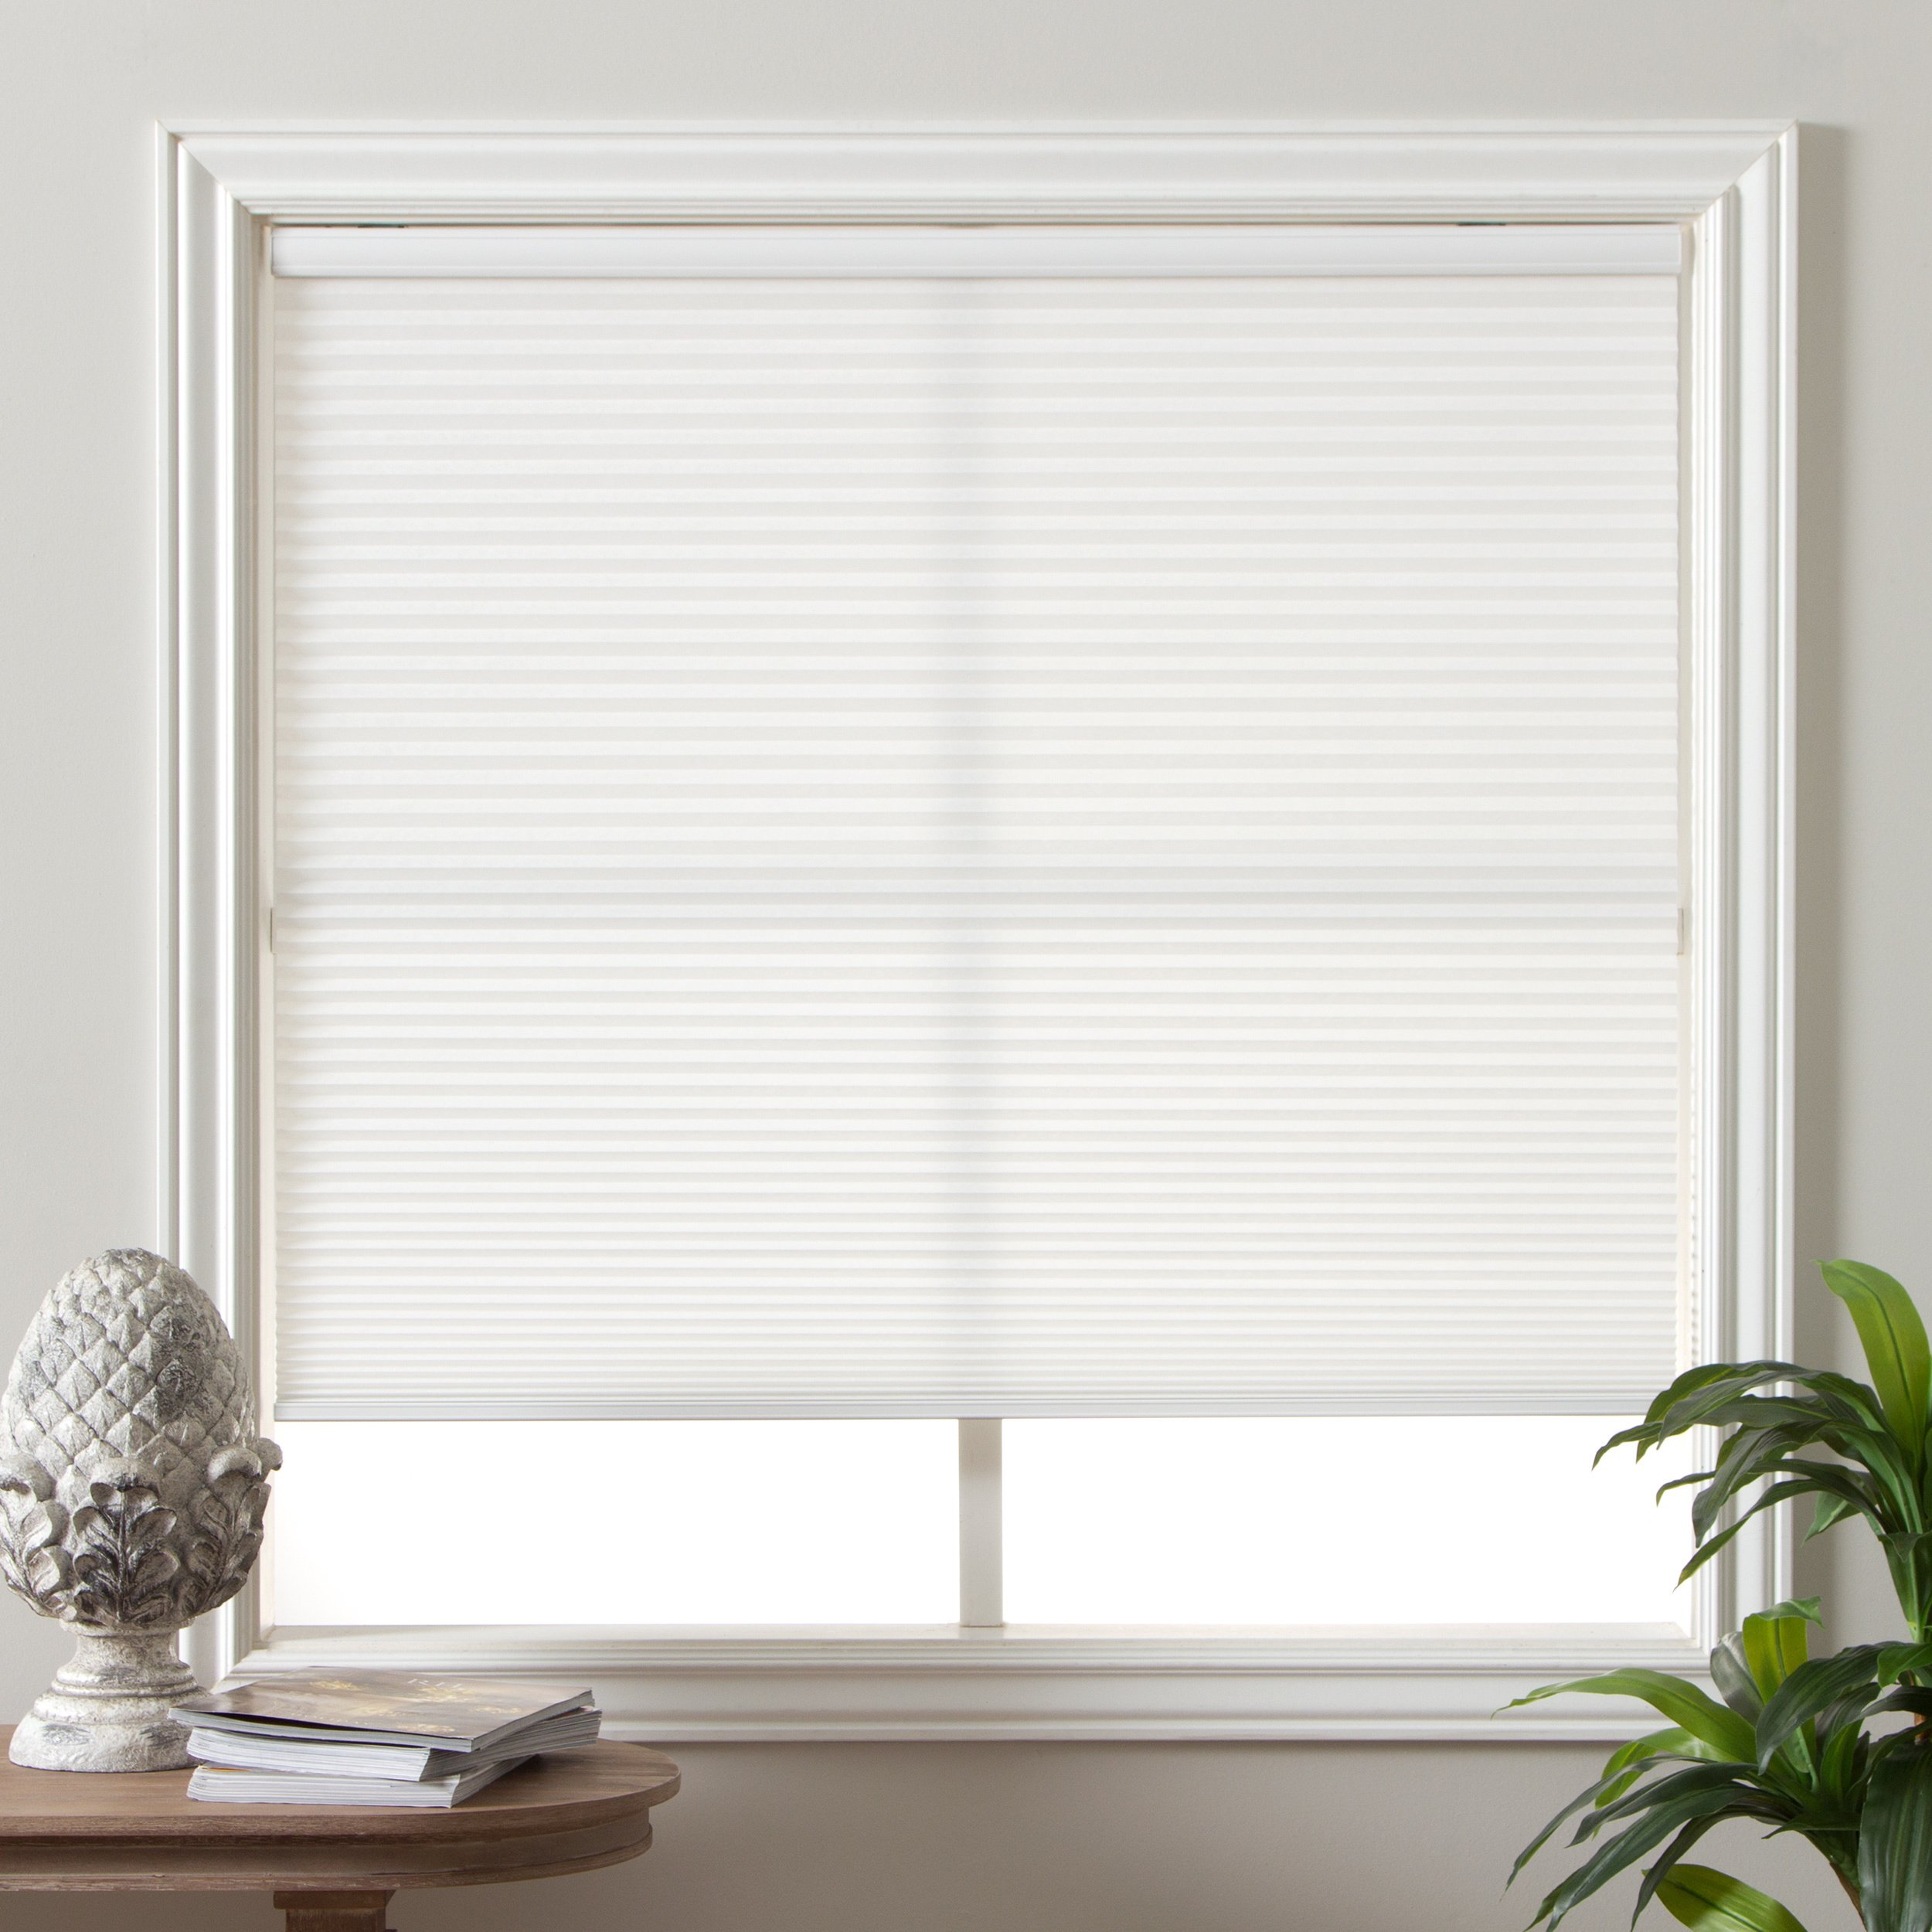 PH 1 Piece 36w x 60h Inches Pure White Blinds, Home Decor Light Filtering Cordless Cellular Shade, Includes Hardware, Horizontal Slat, Easy Match Window Treatments, Polyester Material